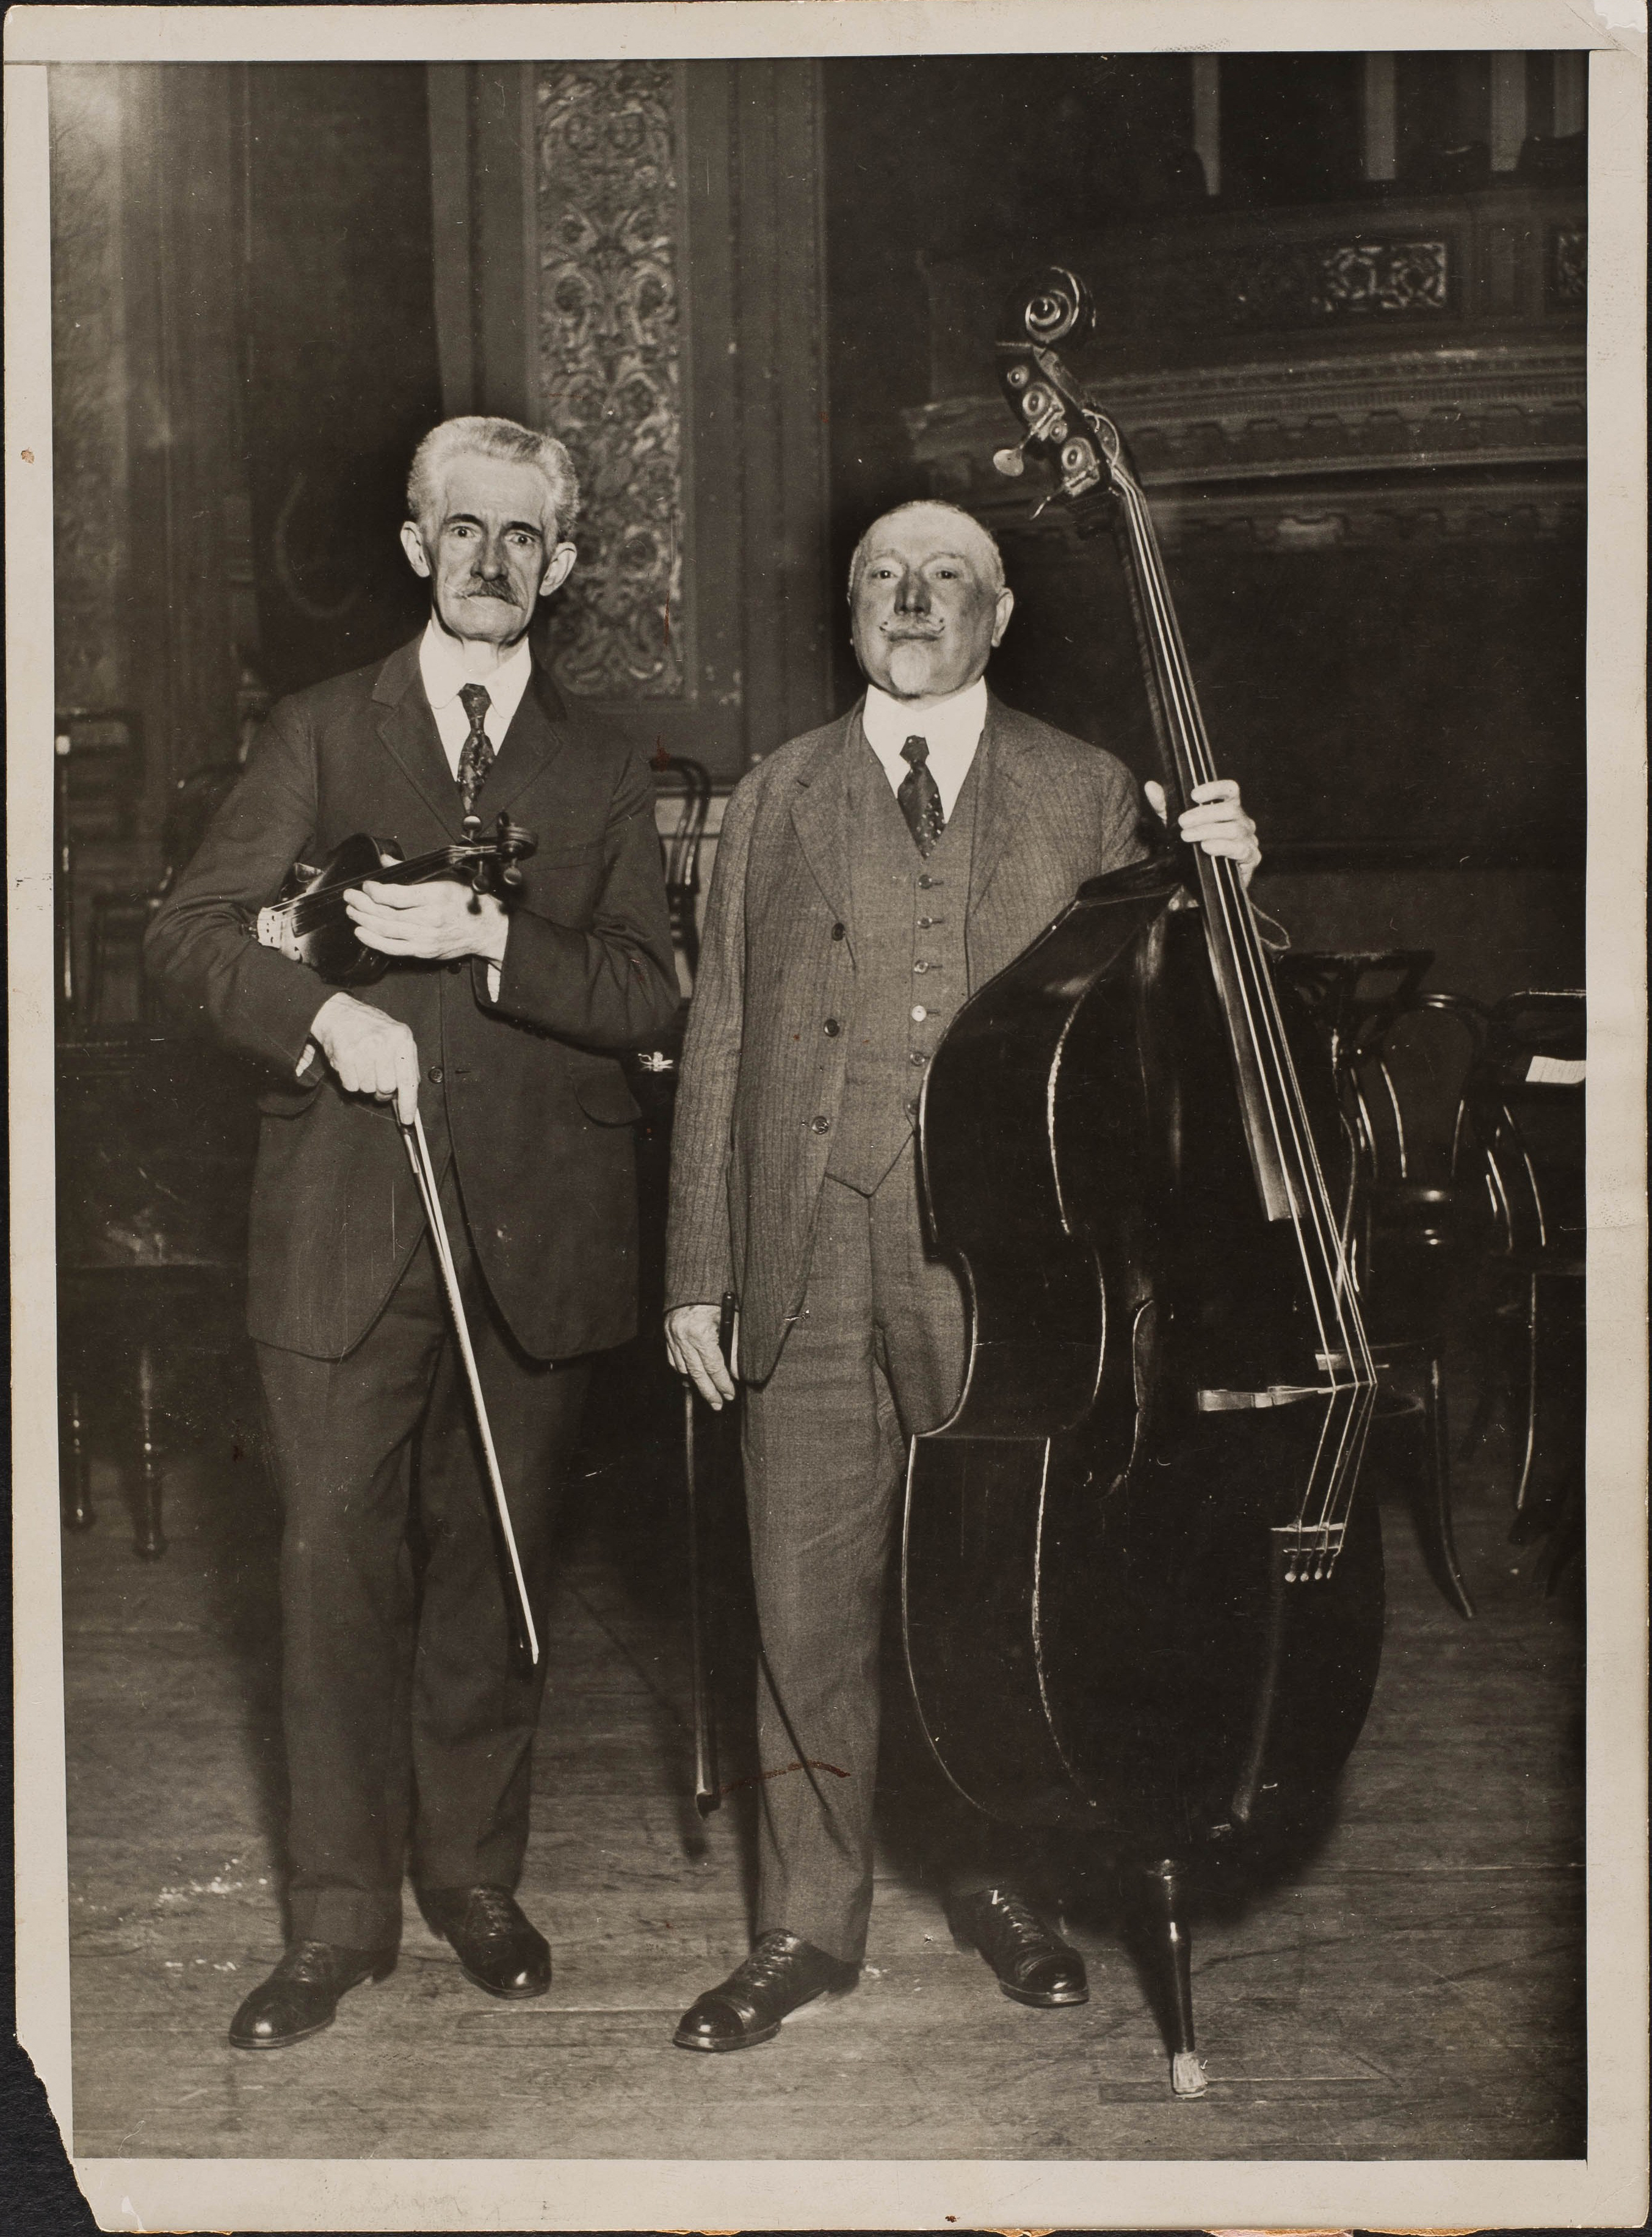 Henry Boewig, Philharmonic Librarian and violinist (1888-1918) with Ludwig Manoly, a member of the Philharmonic bass section (1879-1927)